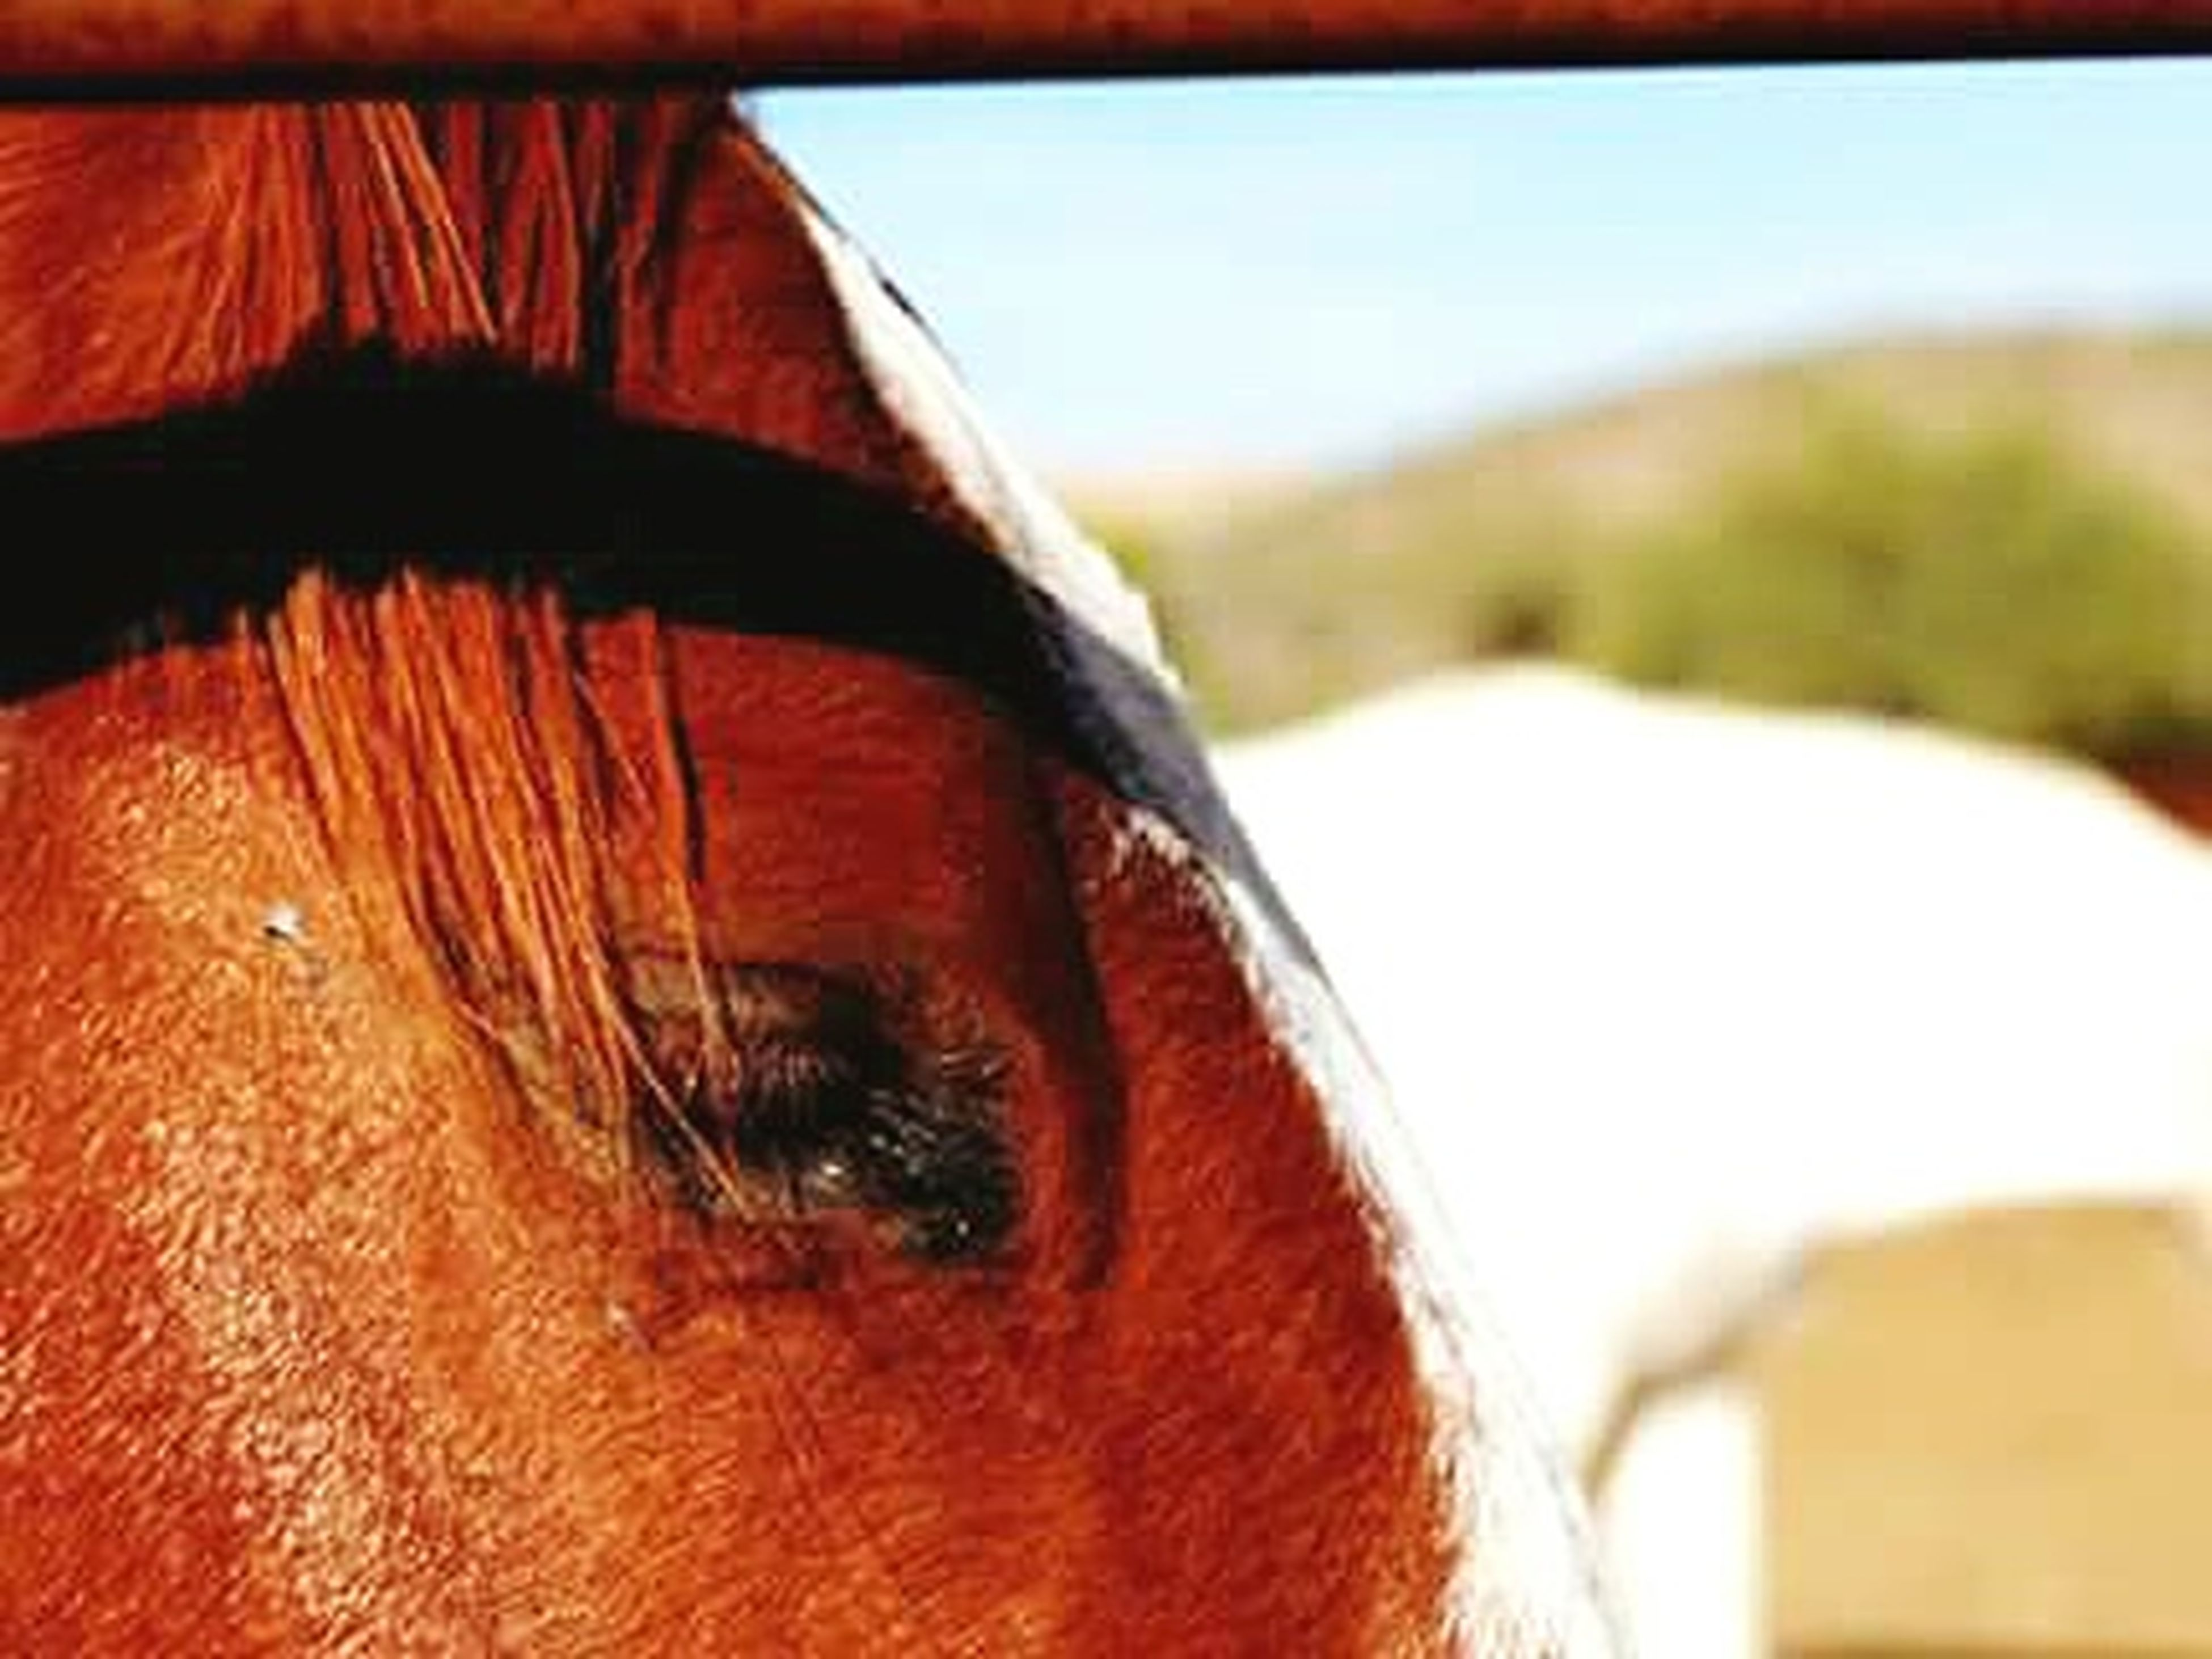 close-up, focus on foreground, brown, part of, cropped, detail, animal head, horse, selective focus, sky, day, no people, animal body part, indoors, sunlight, extreme close up, auto post production filter, nature, desert